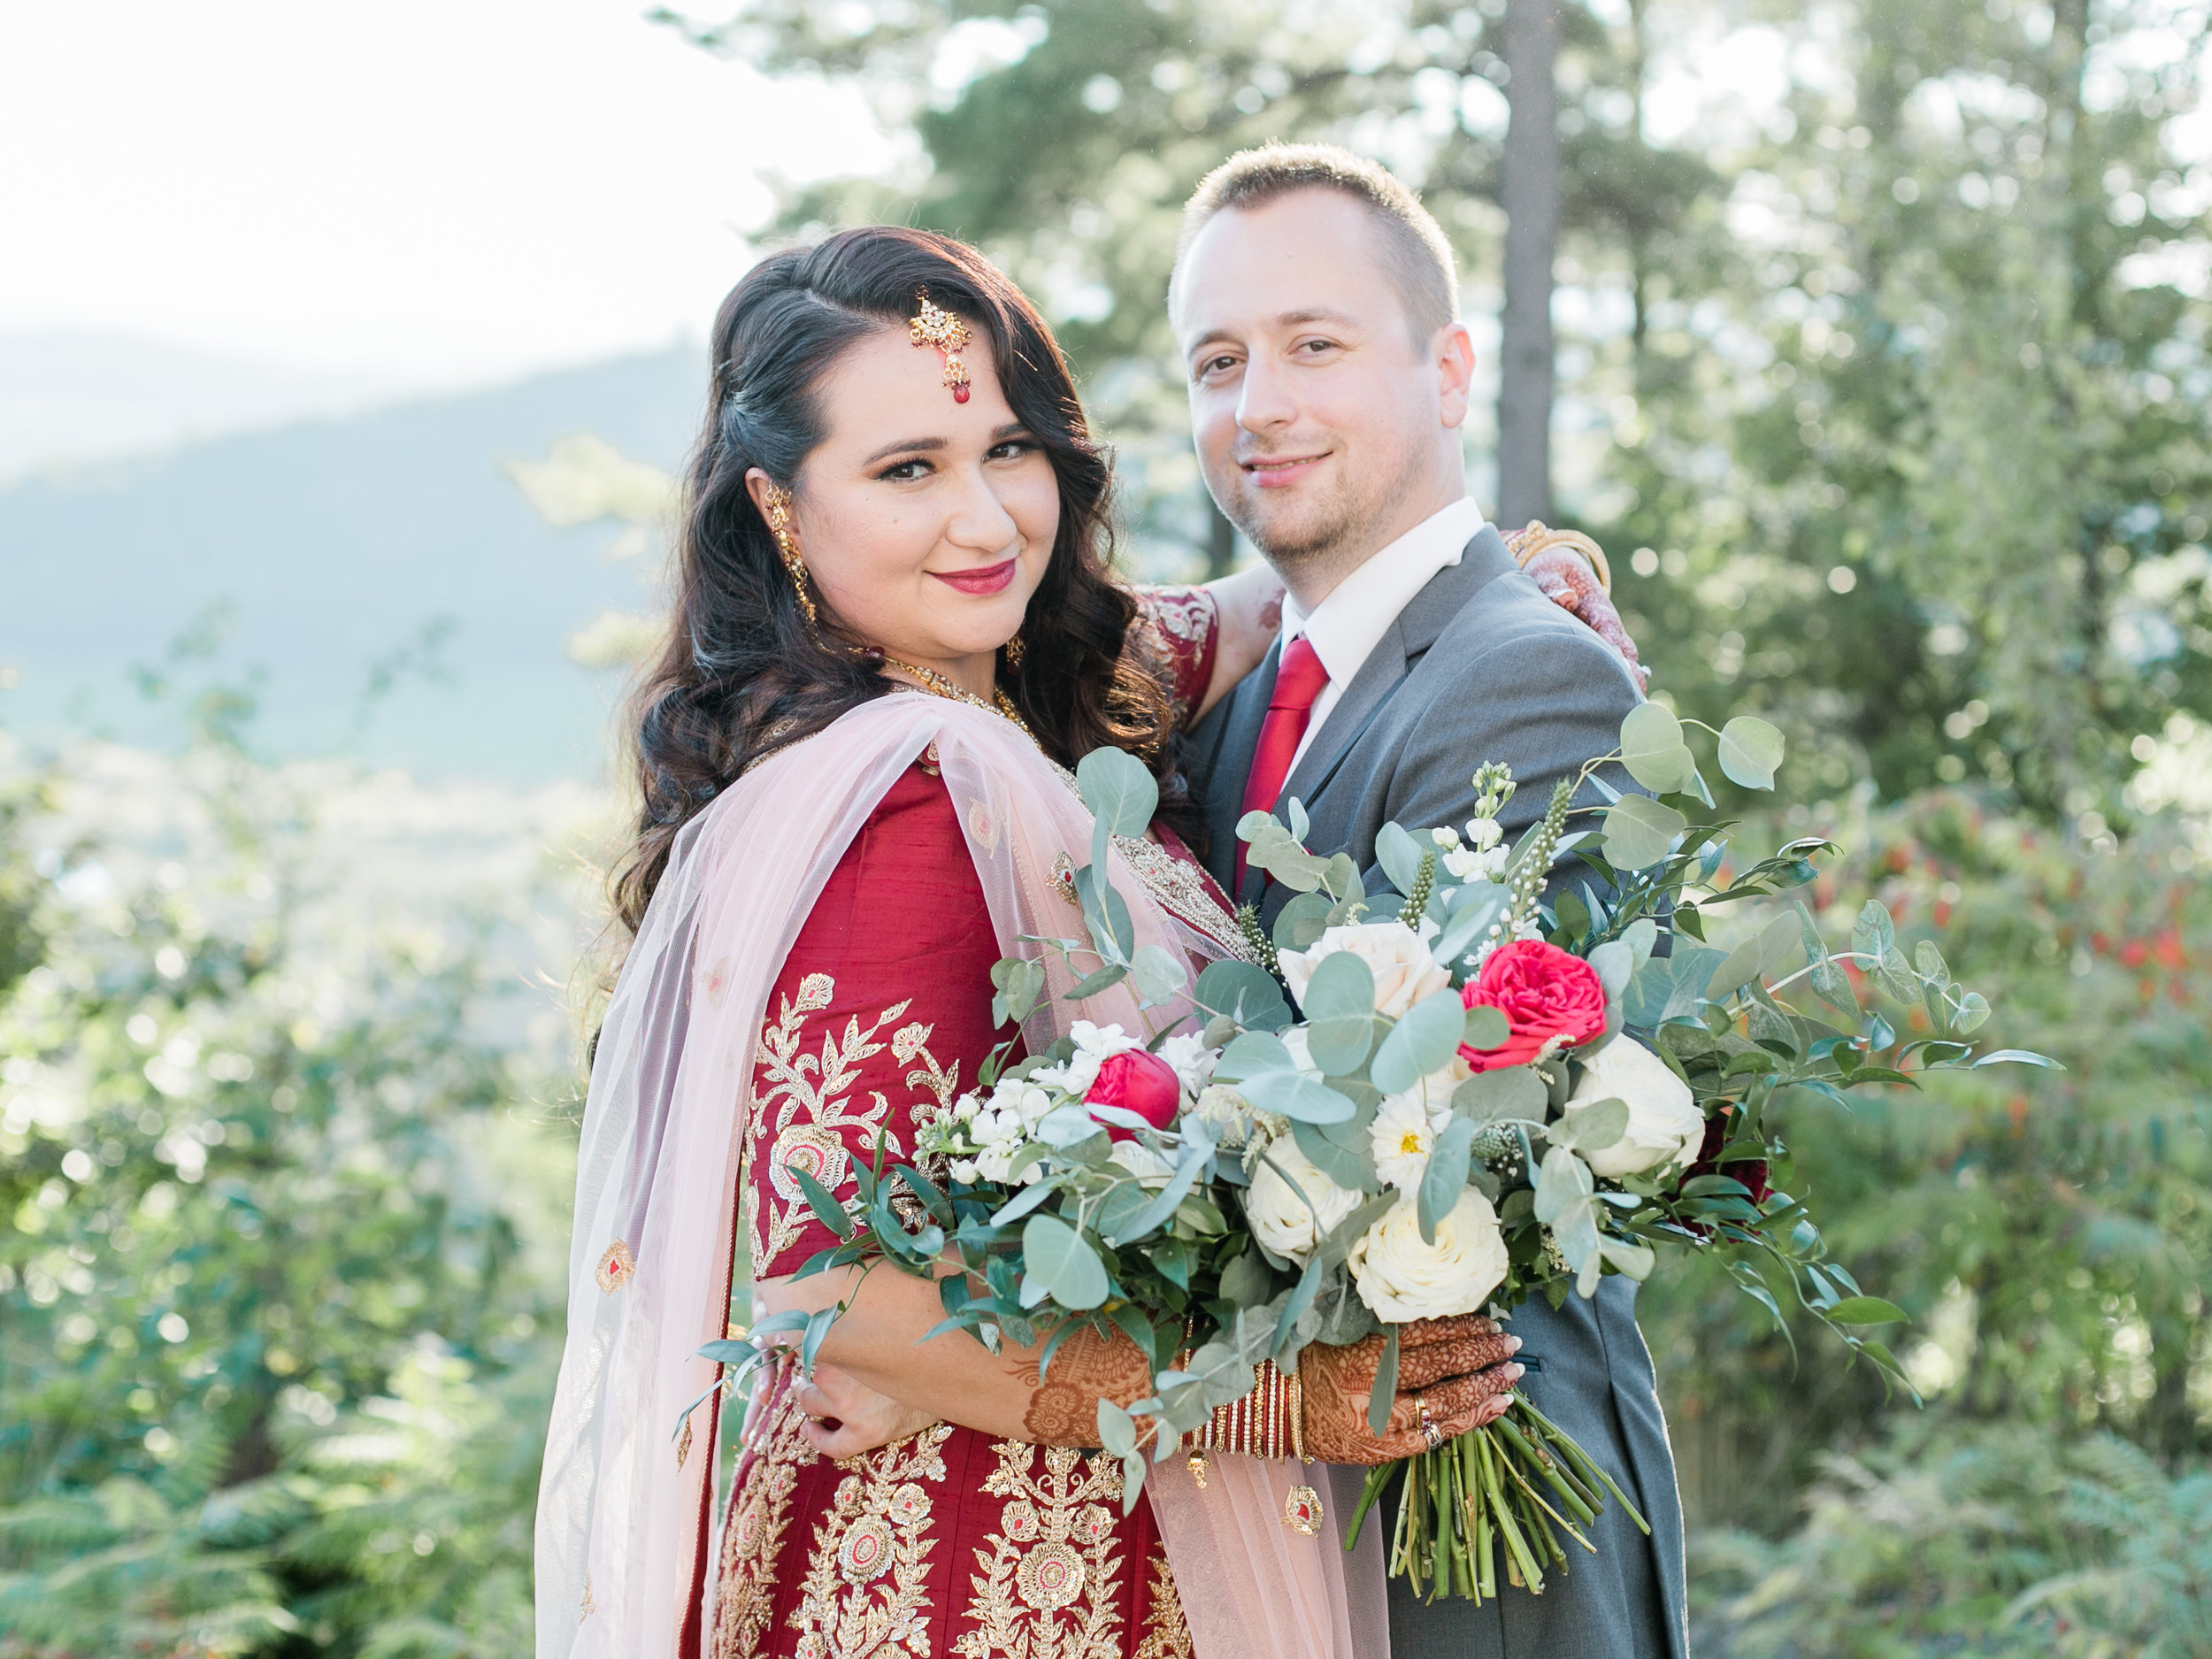 LeBelvedere_MountainTopWedding_StephanieMasonPhotography-250.jpg